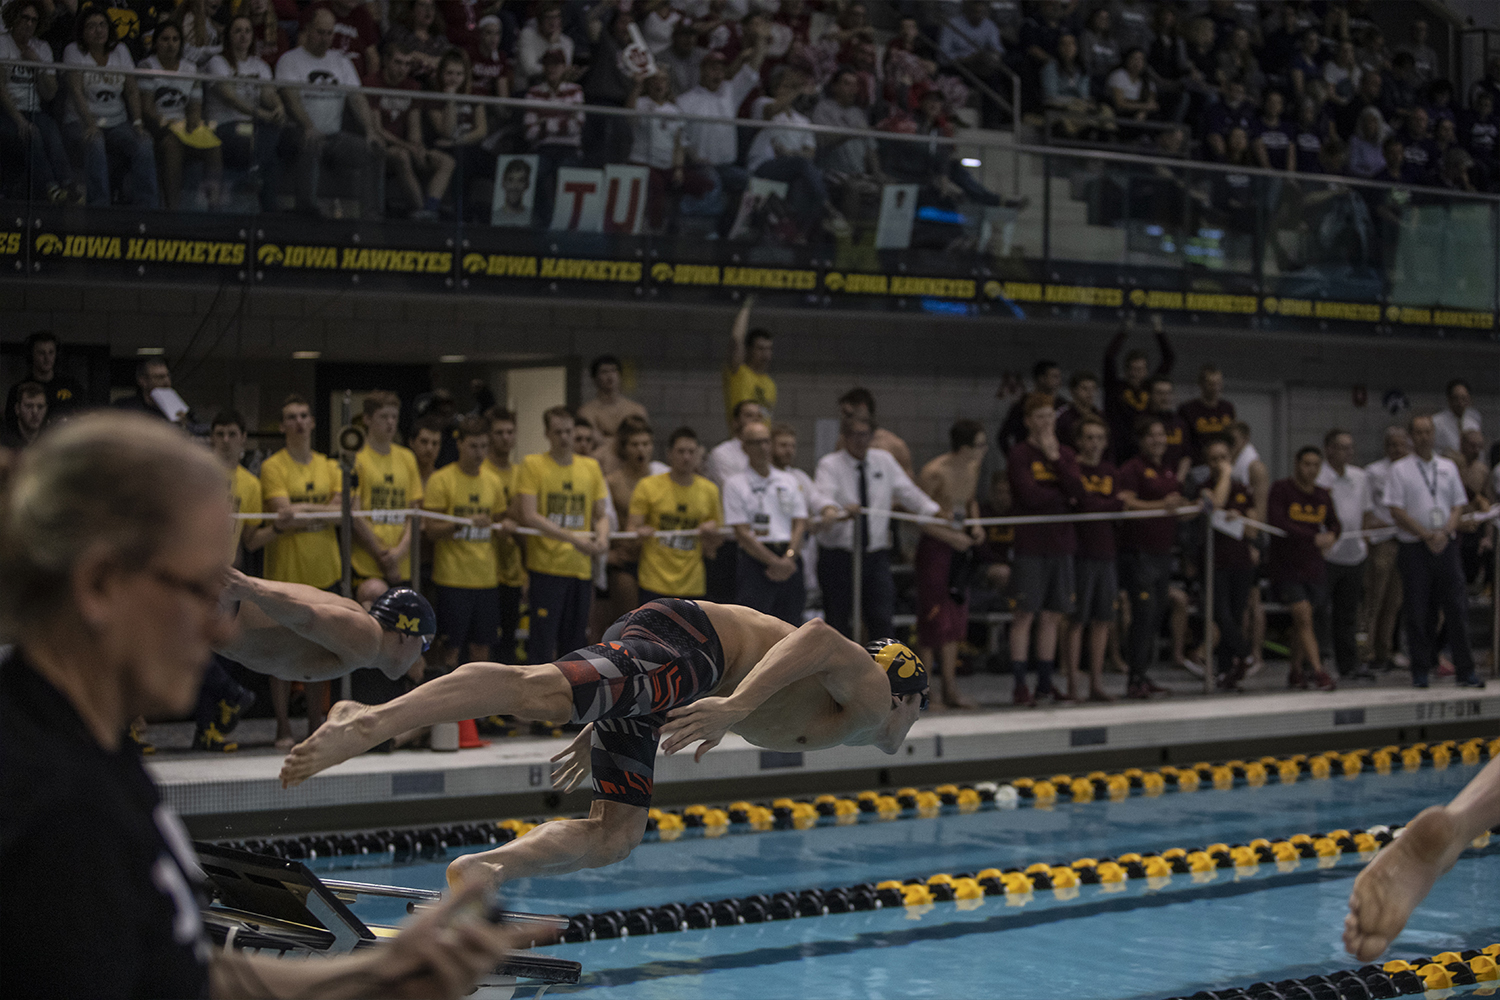 Michigan+head+coach+Mike+Bottom+speaks+to+his+athletes+before+final+competition+of+the+Big+10+Swimming+Championships+on+Saturday%2C+March+2%2C+2019.+